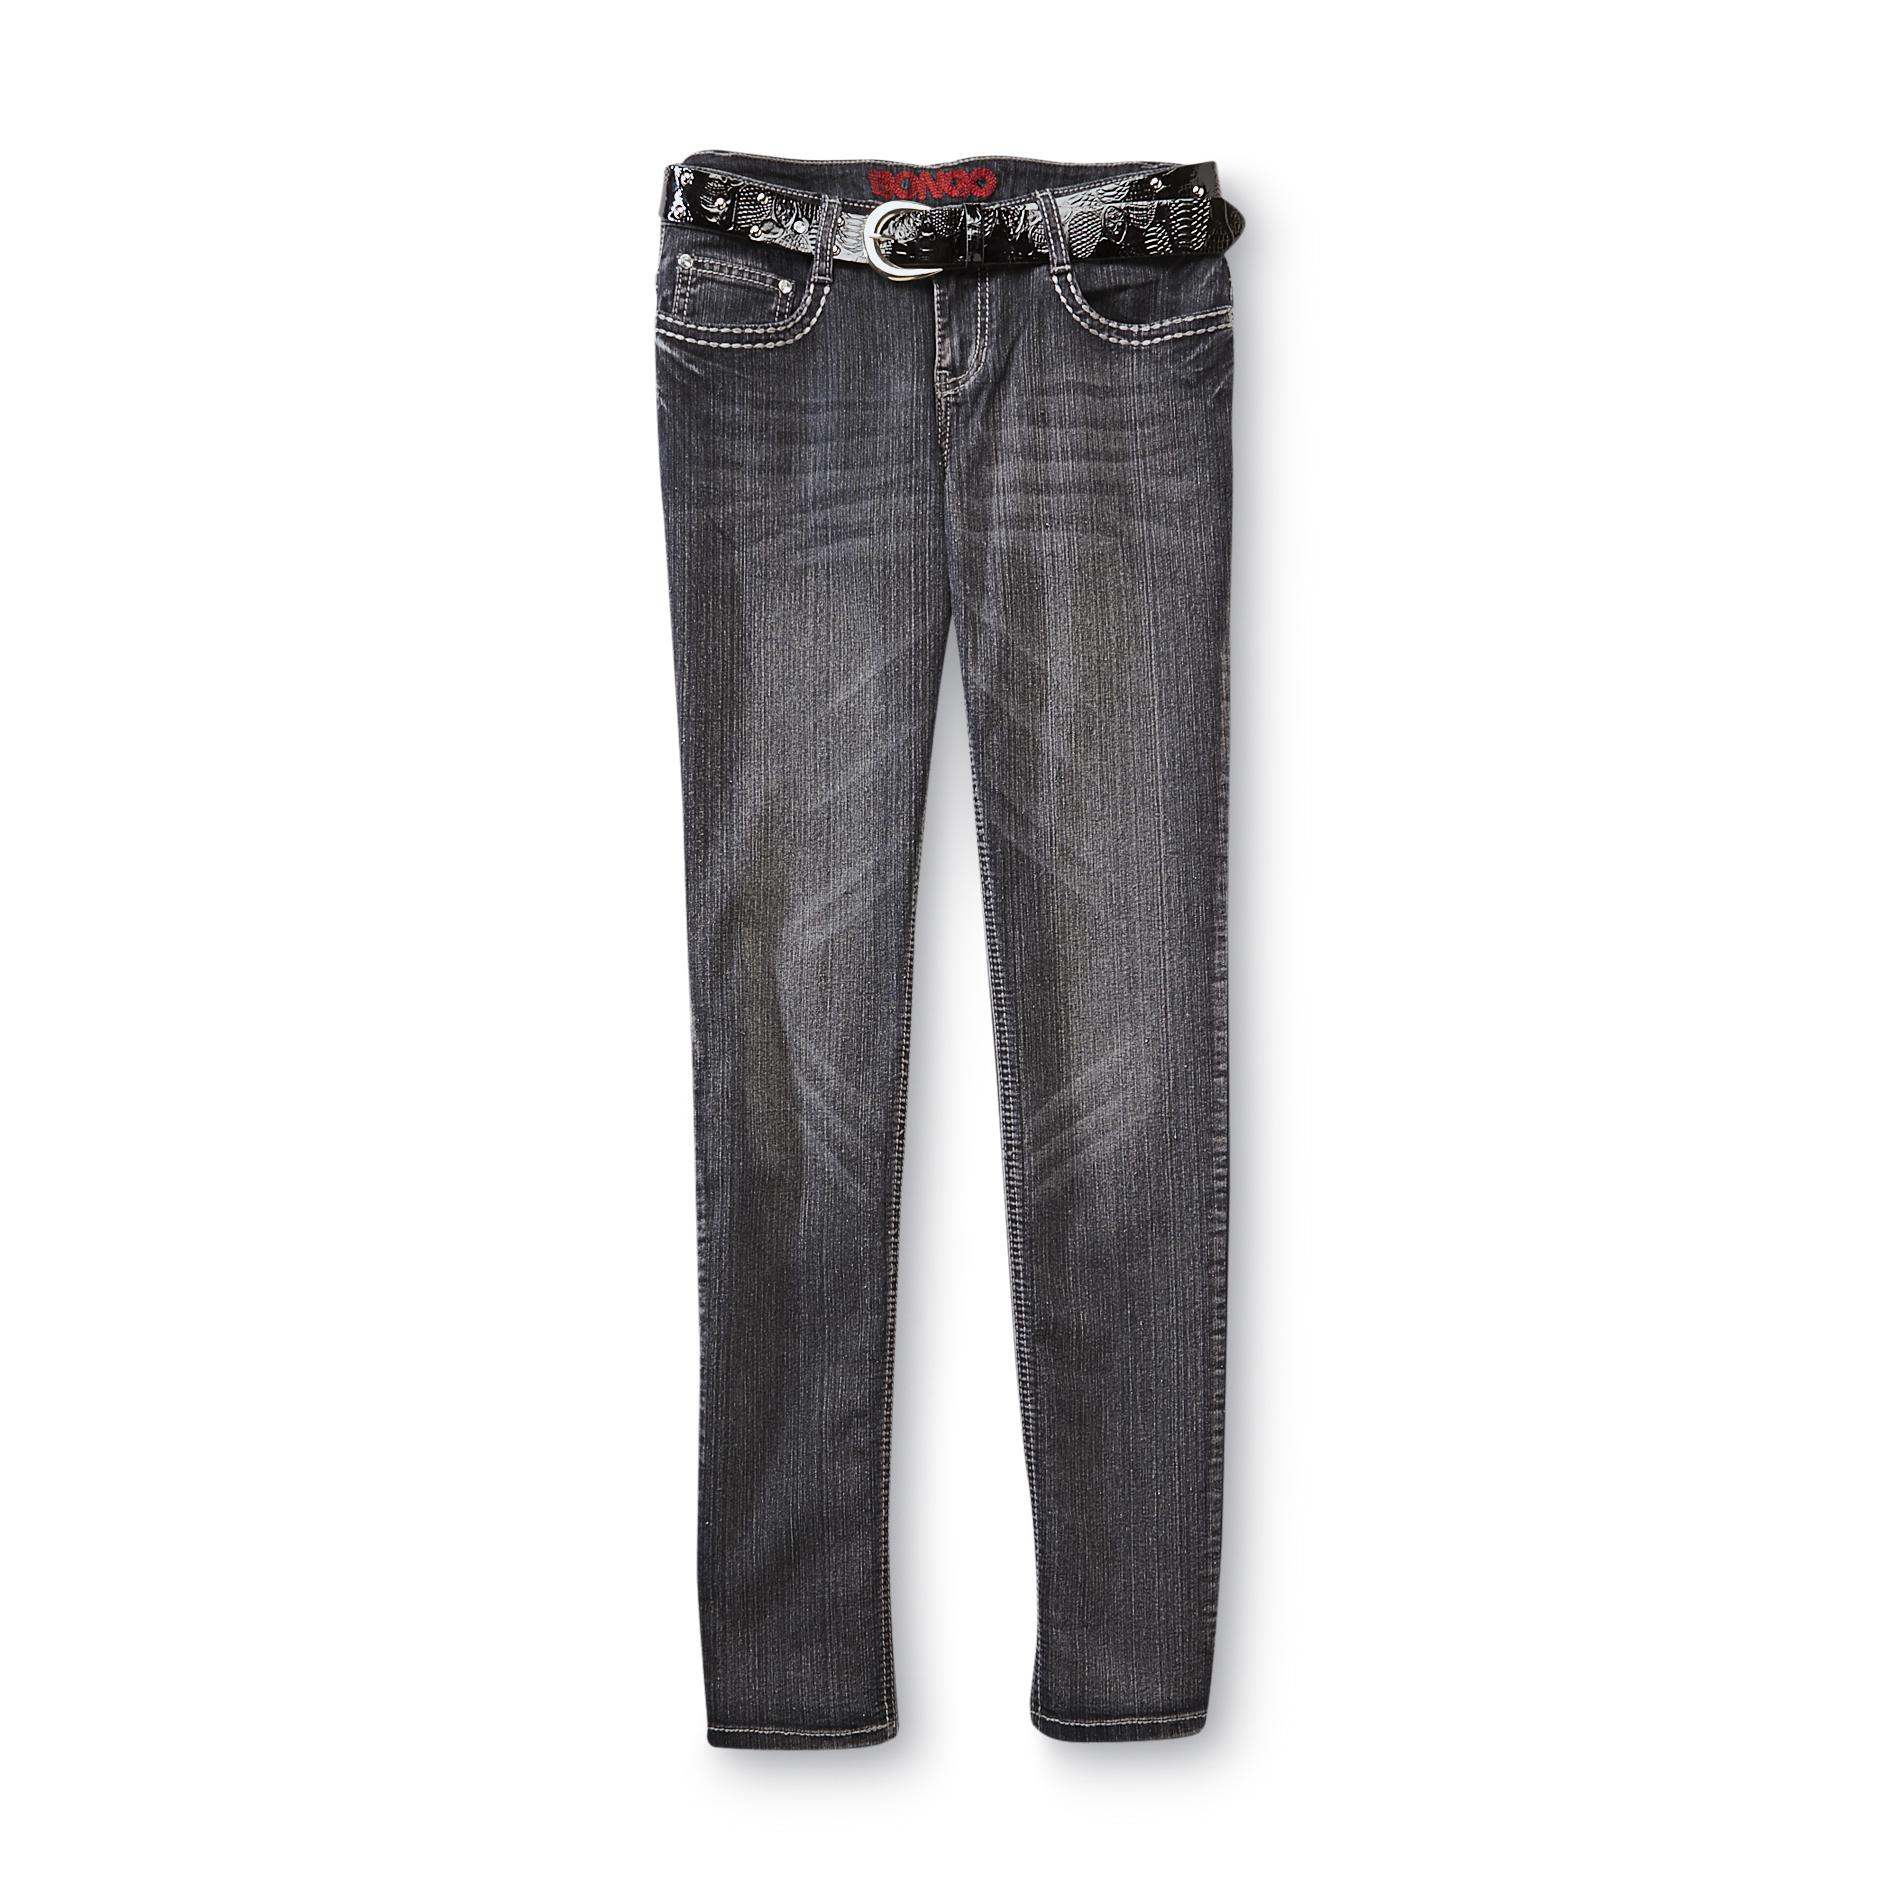 Bongo Junior's Belted Skinny Jeans - Whisker Wash at Sears.com